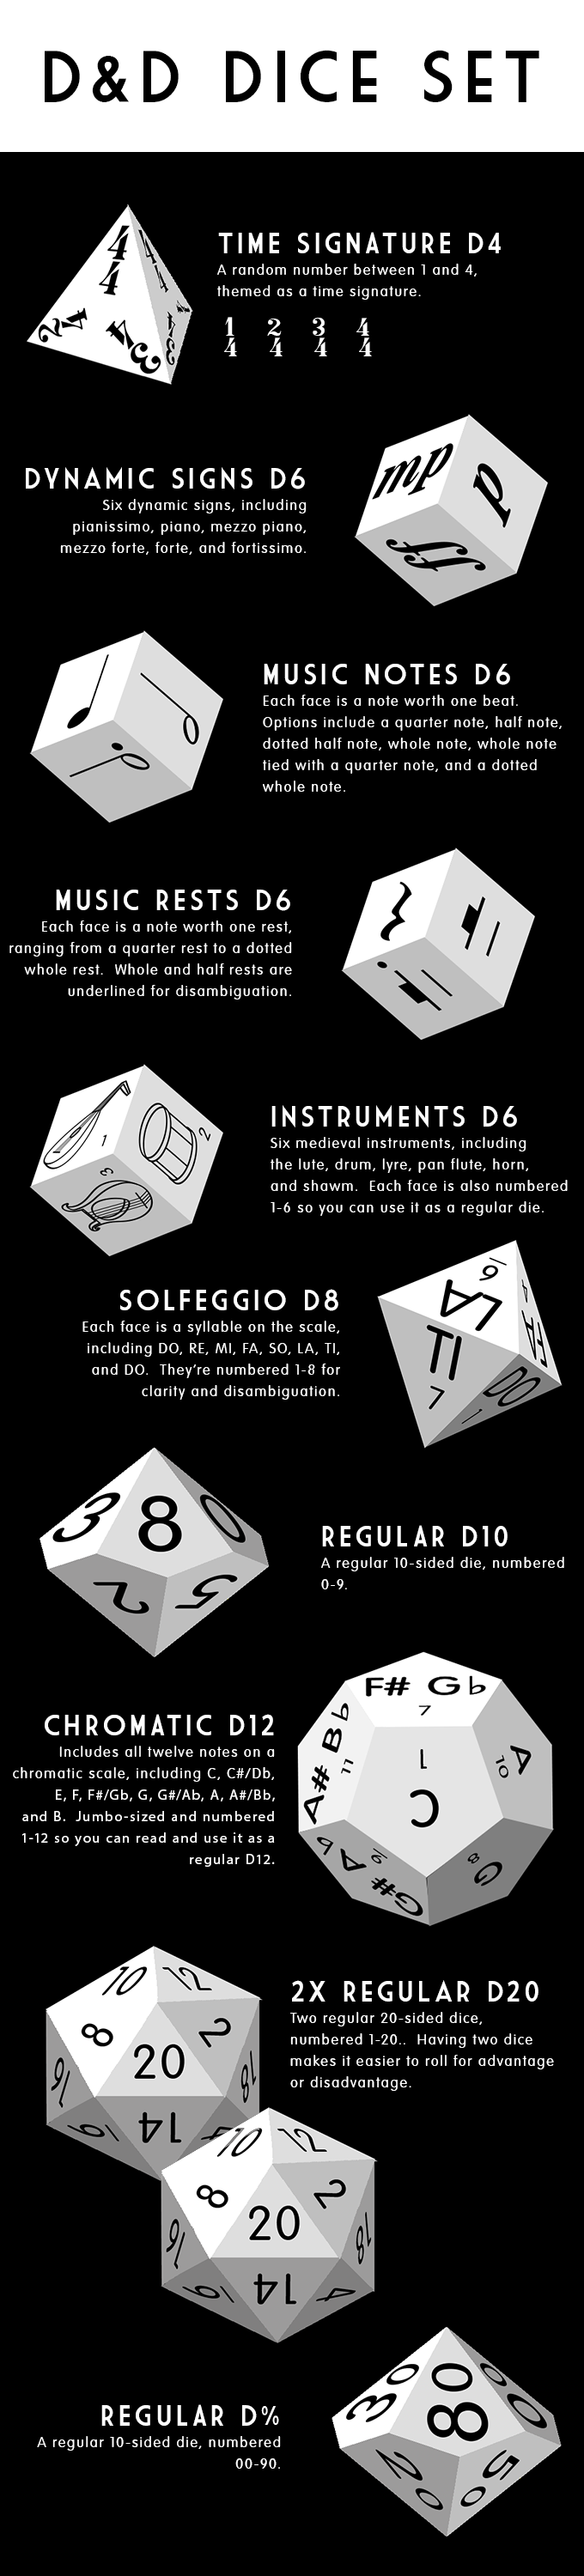 D&D Dice Set with Music Notation Explanation